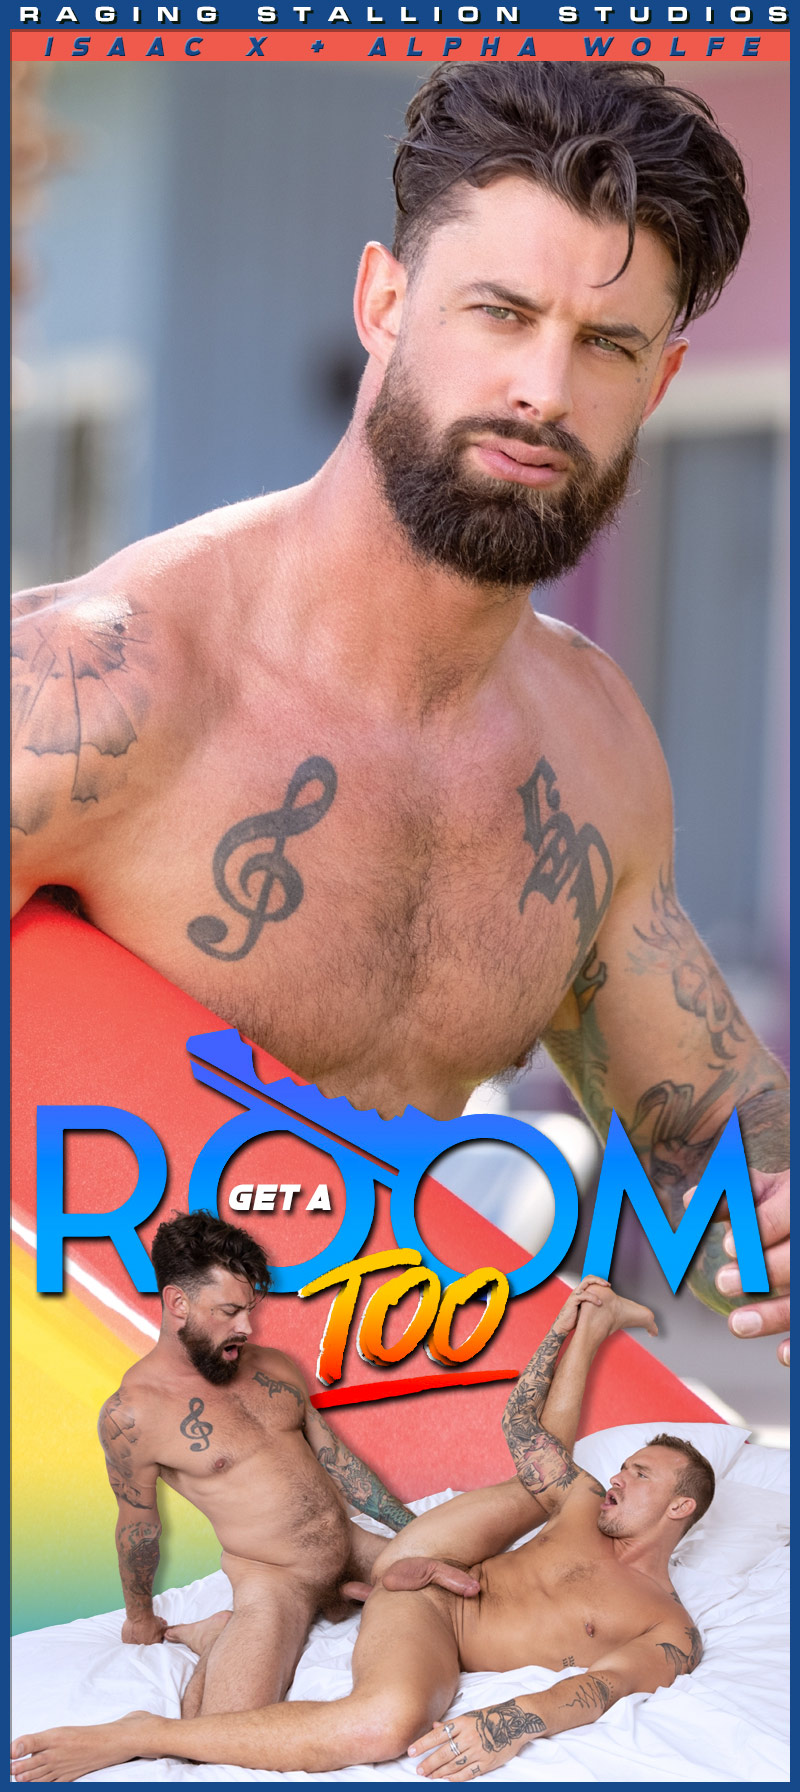 Get A Room TOO, Scene 3 (Isaac X and Alpha Wolfe Flip-Fuck) at Raging Stallion